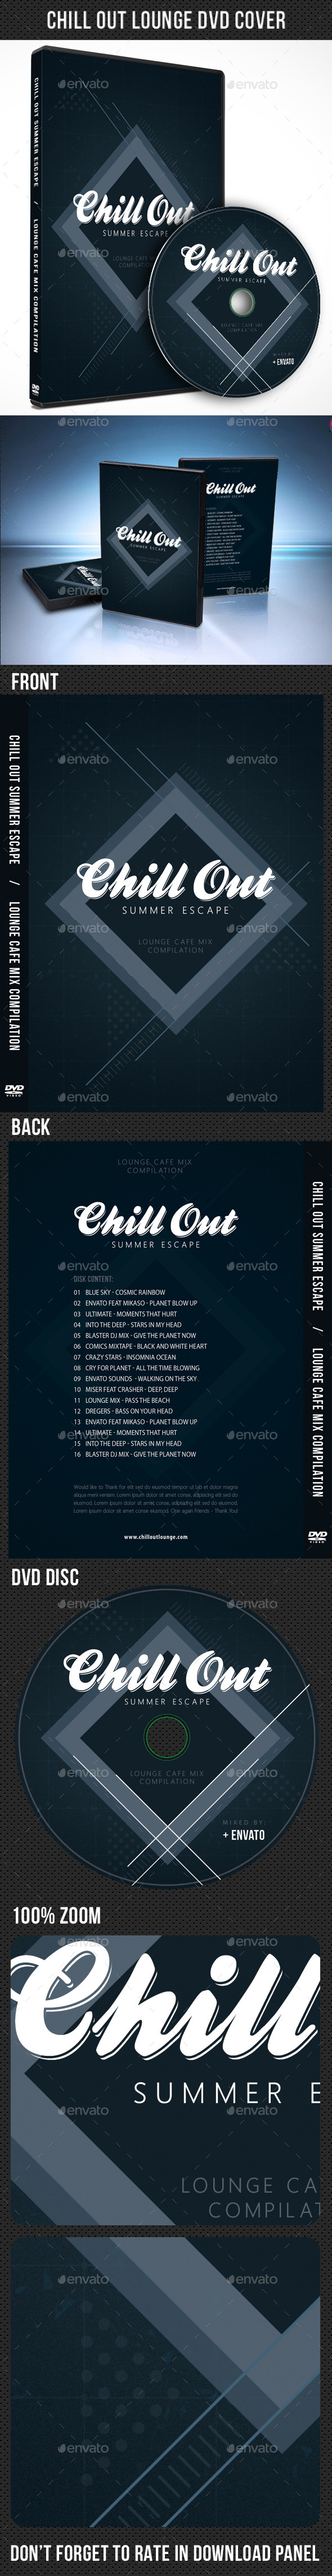 Chill Out Lounge DVD Cover Template